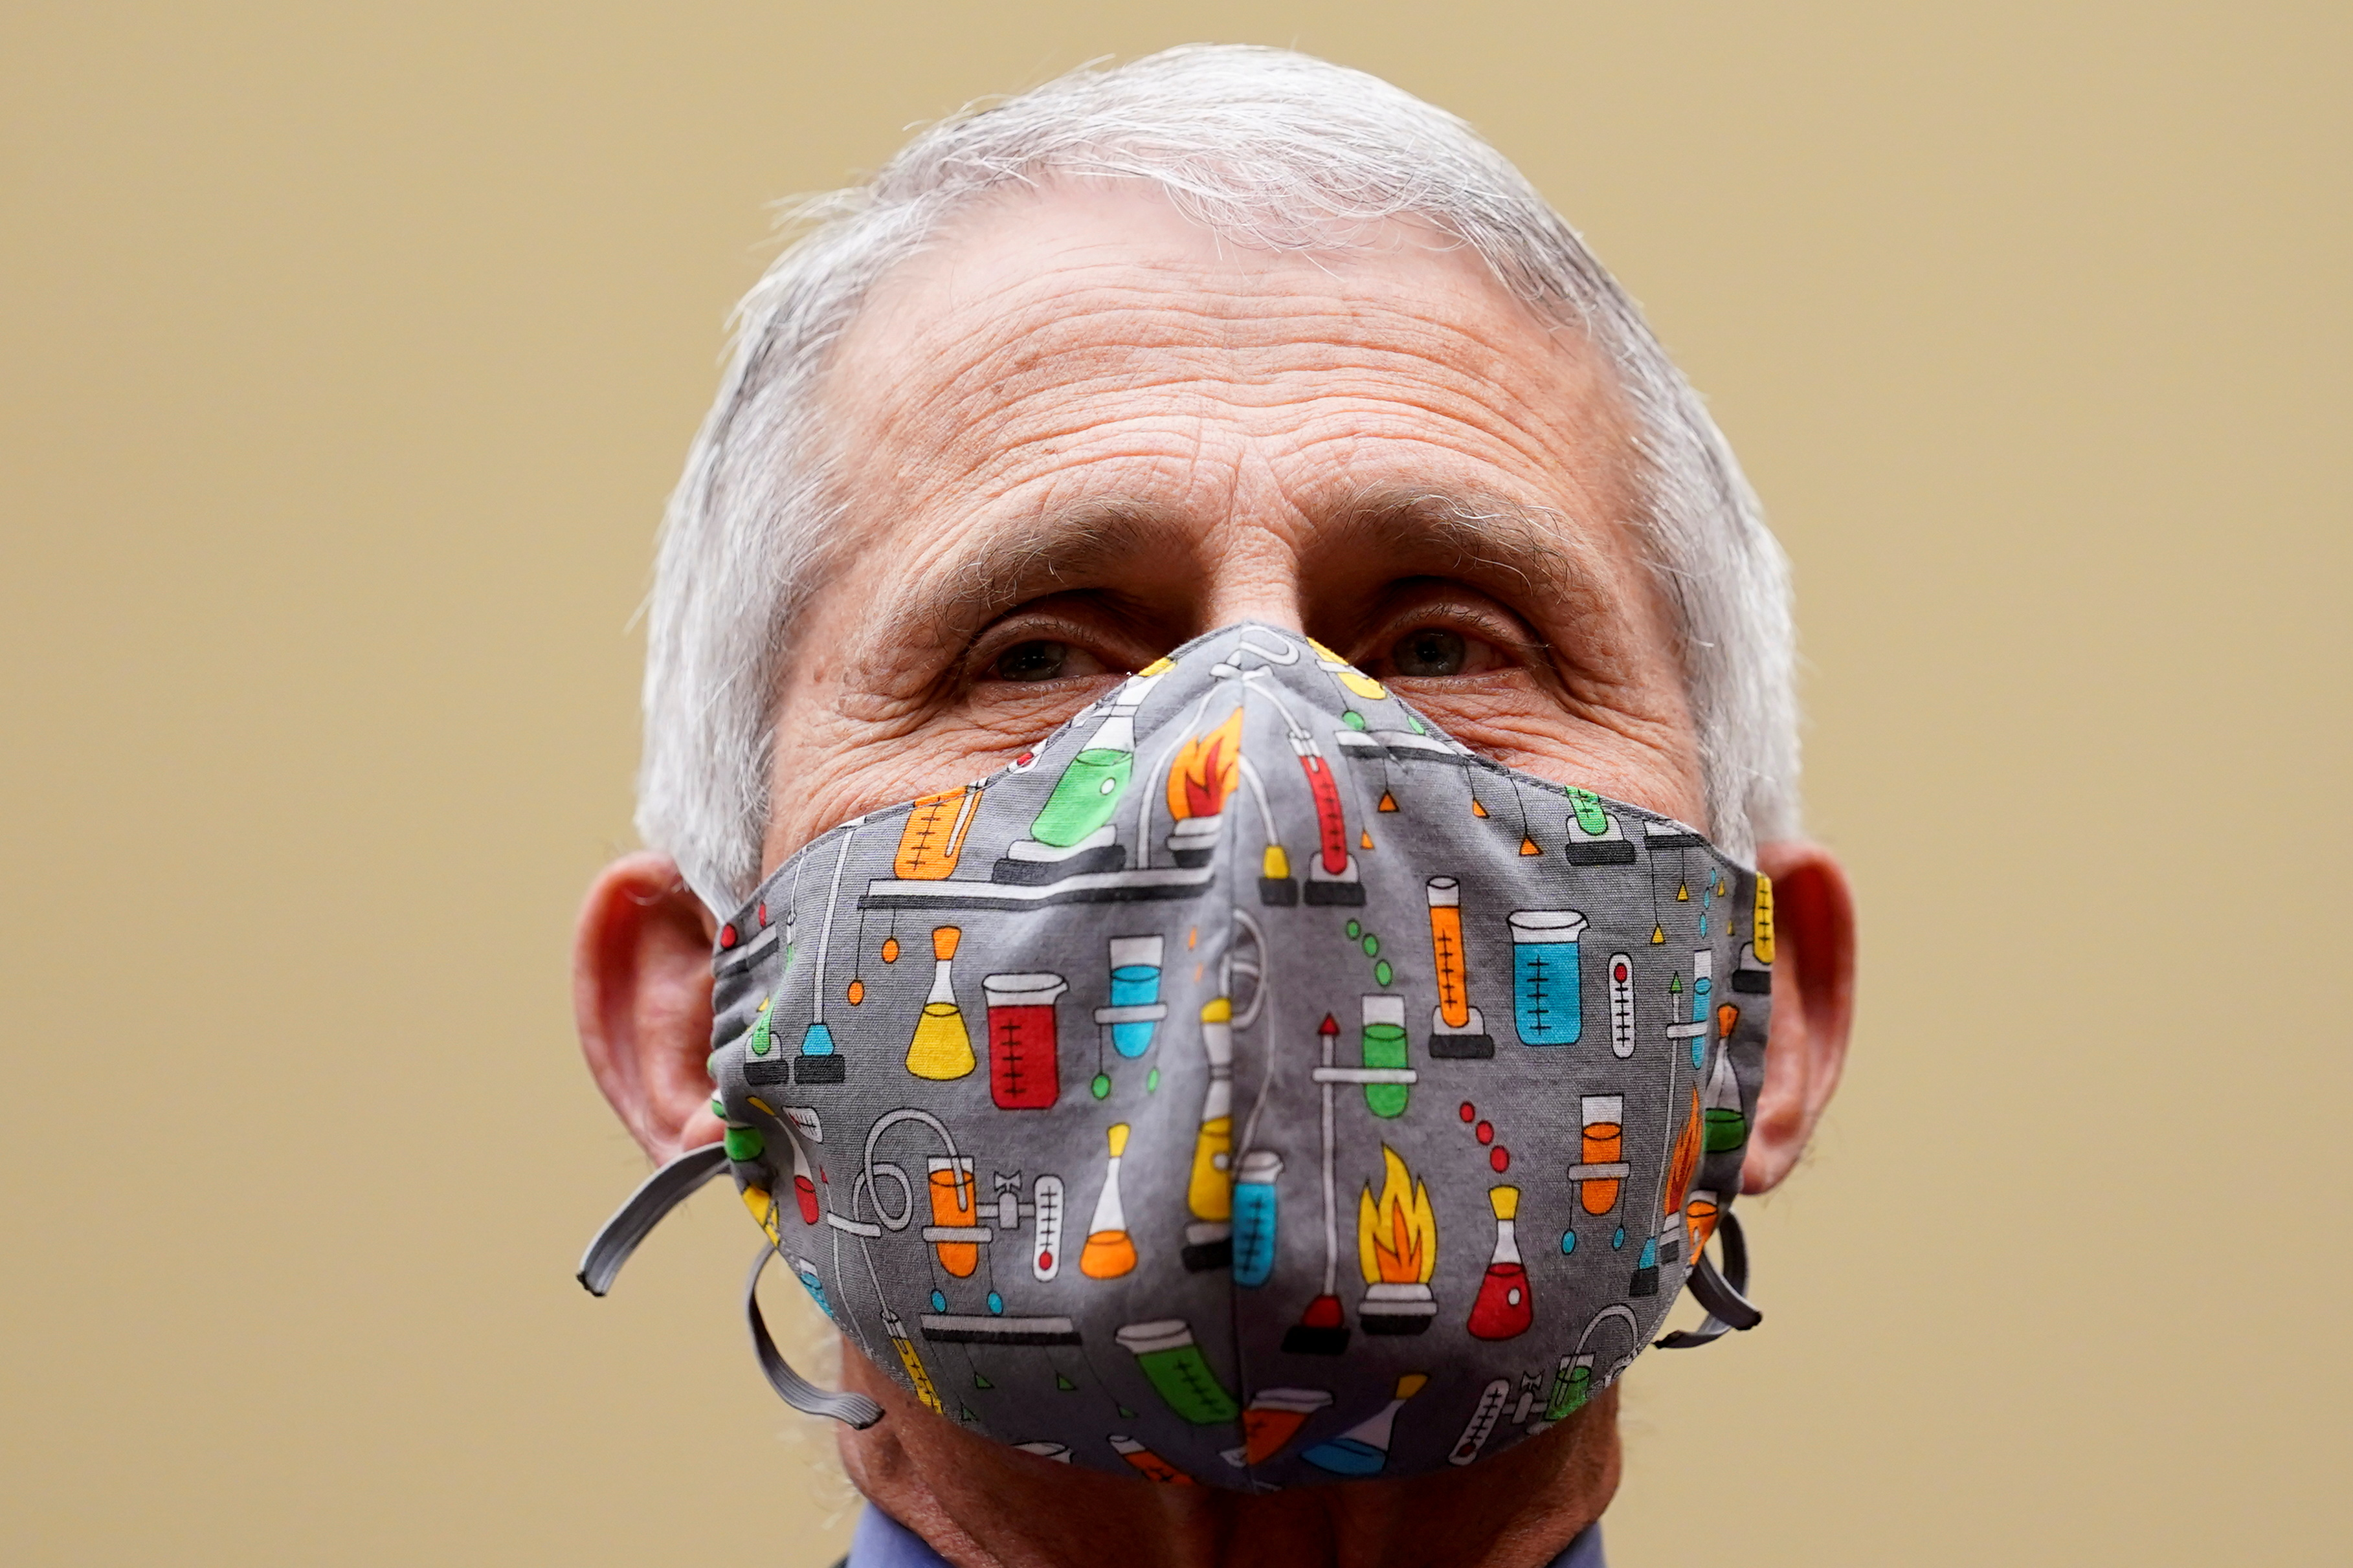 Dr. Anthony Fauci, director of the National Institute of Allergy and Infectious Diseases testifies before a House Select Subcommittee on the Coronavirus Crisis on the Capitol Hill in Washington, U.S., April 15, 2021. Susan Walsh/Pool via REUTERS/File Photo